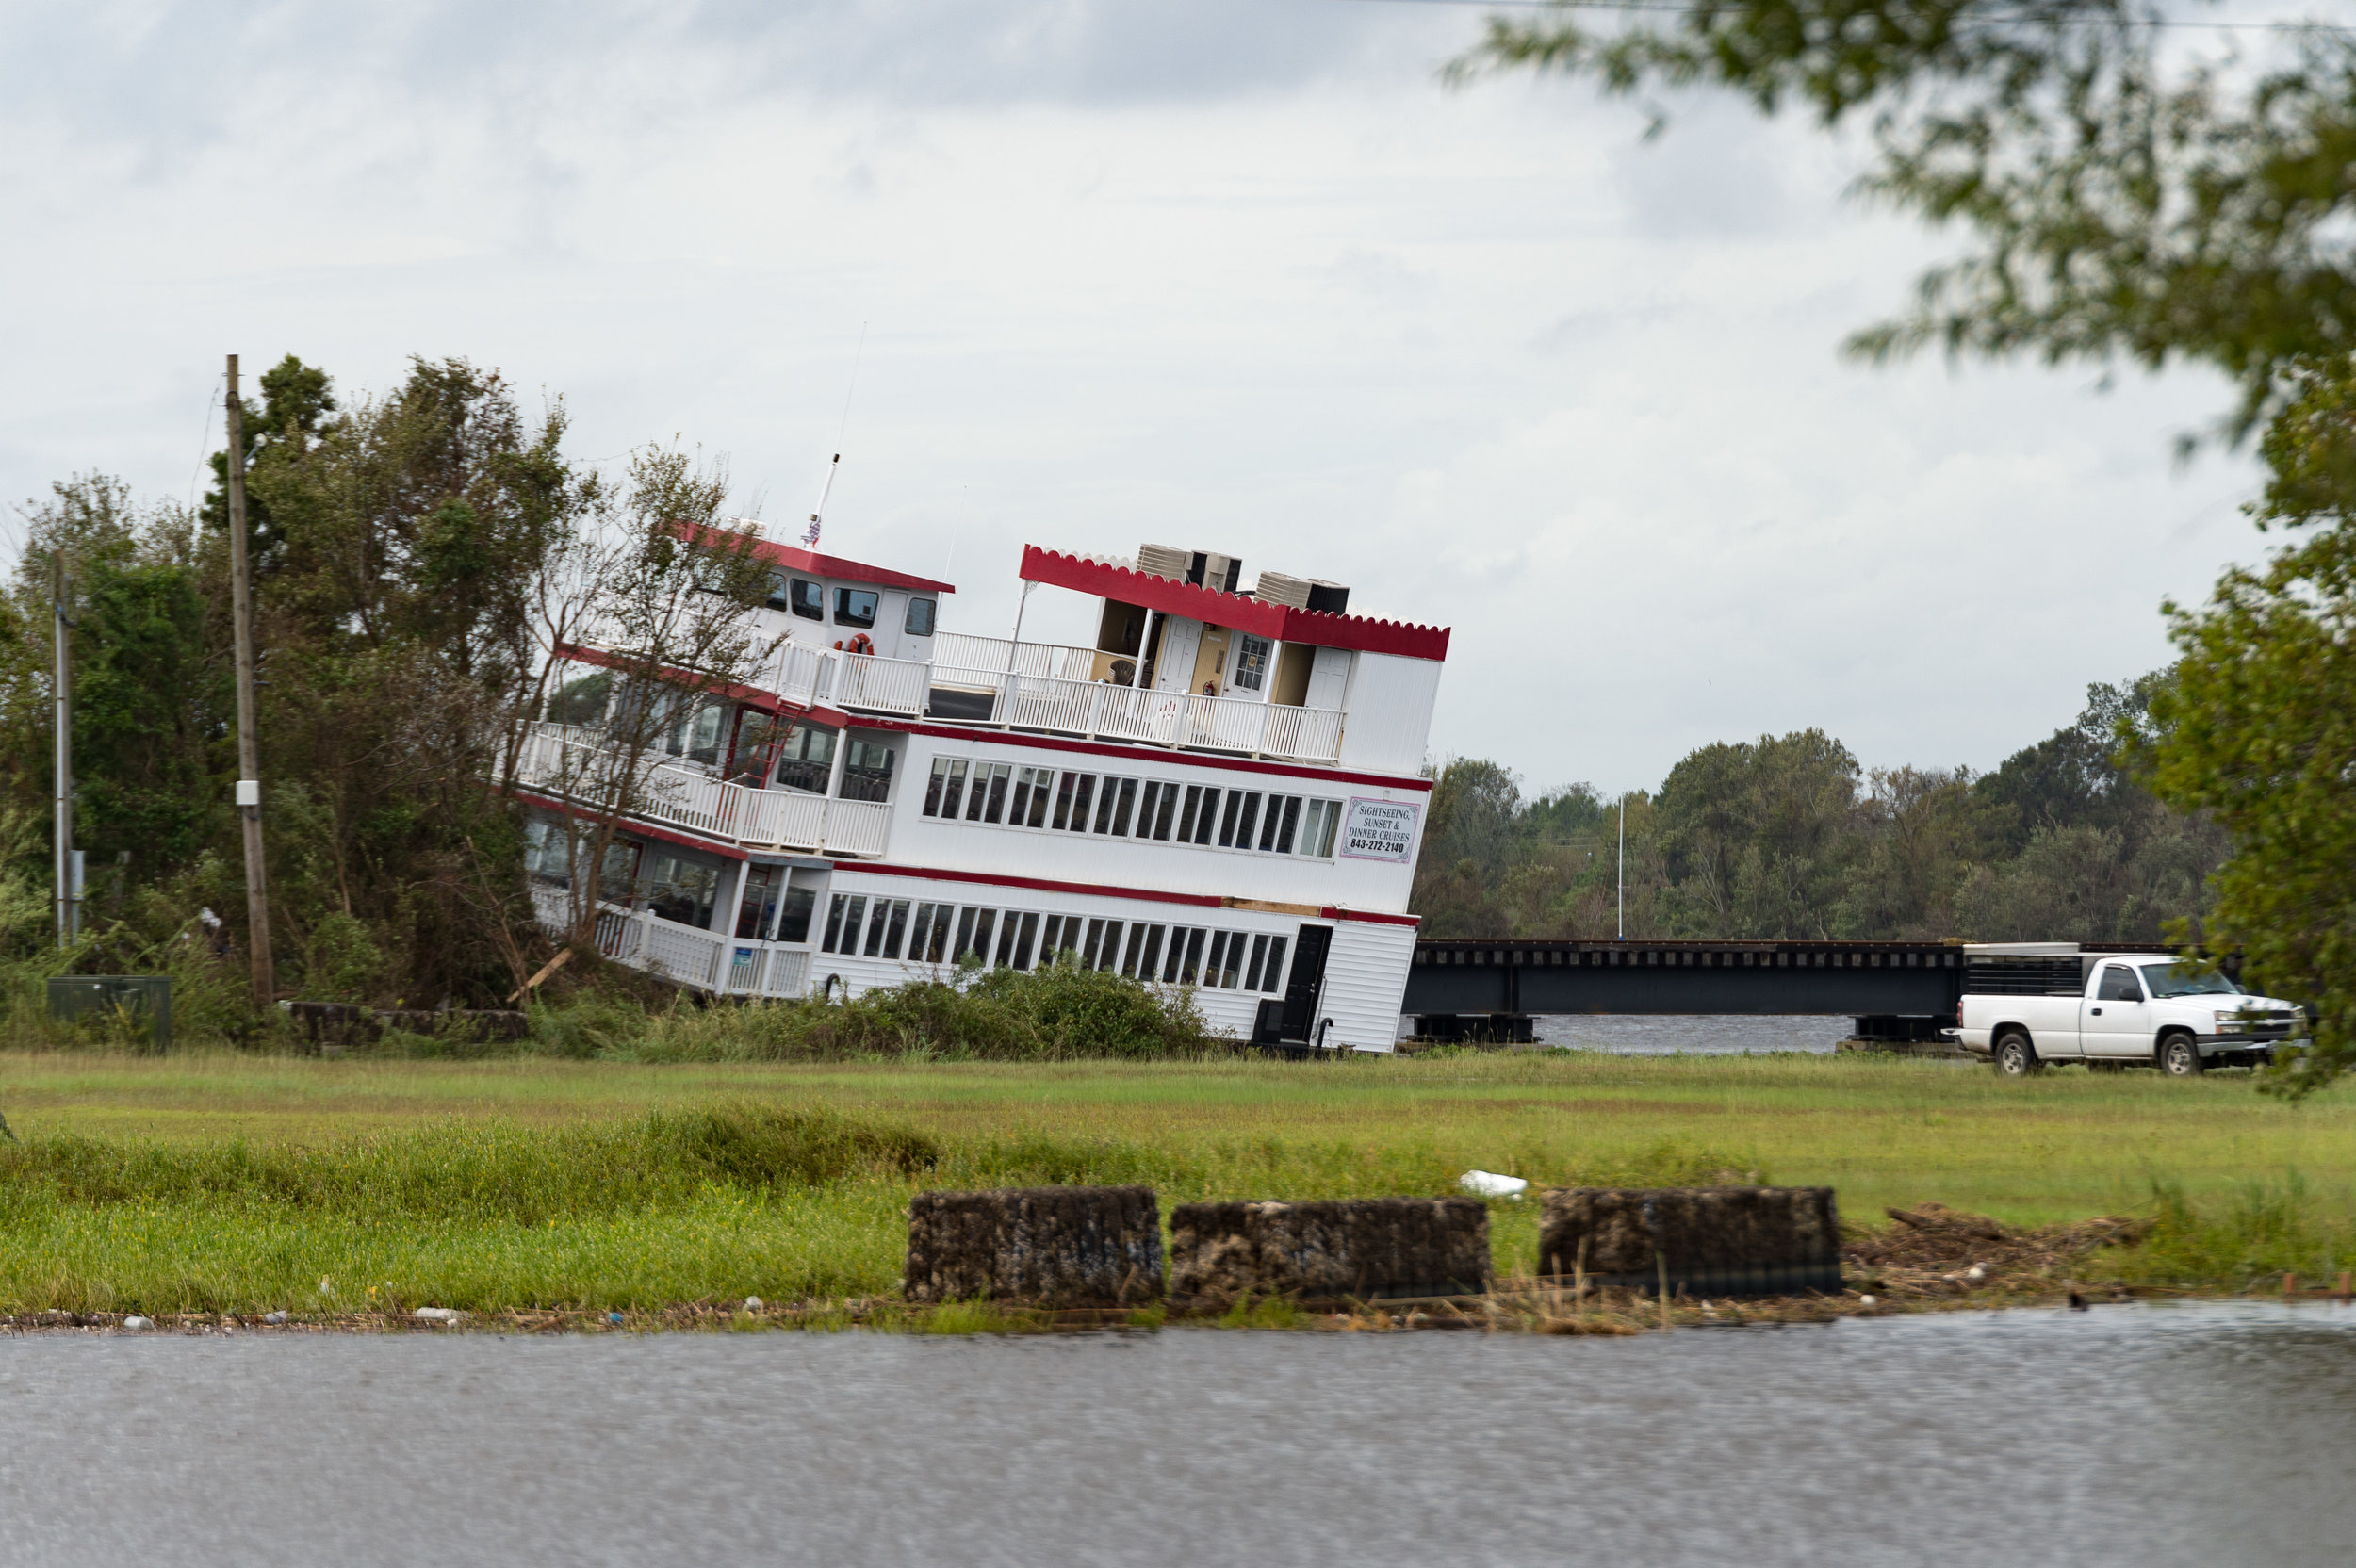 September 16, 2018, Pollocksville, NC- Damaged boats near New Bern.